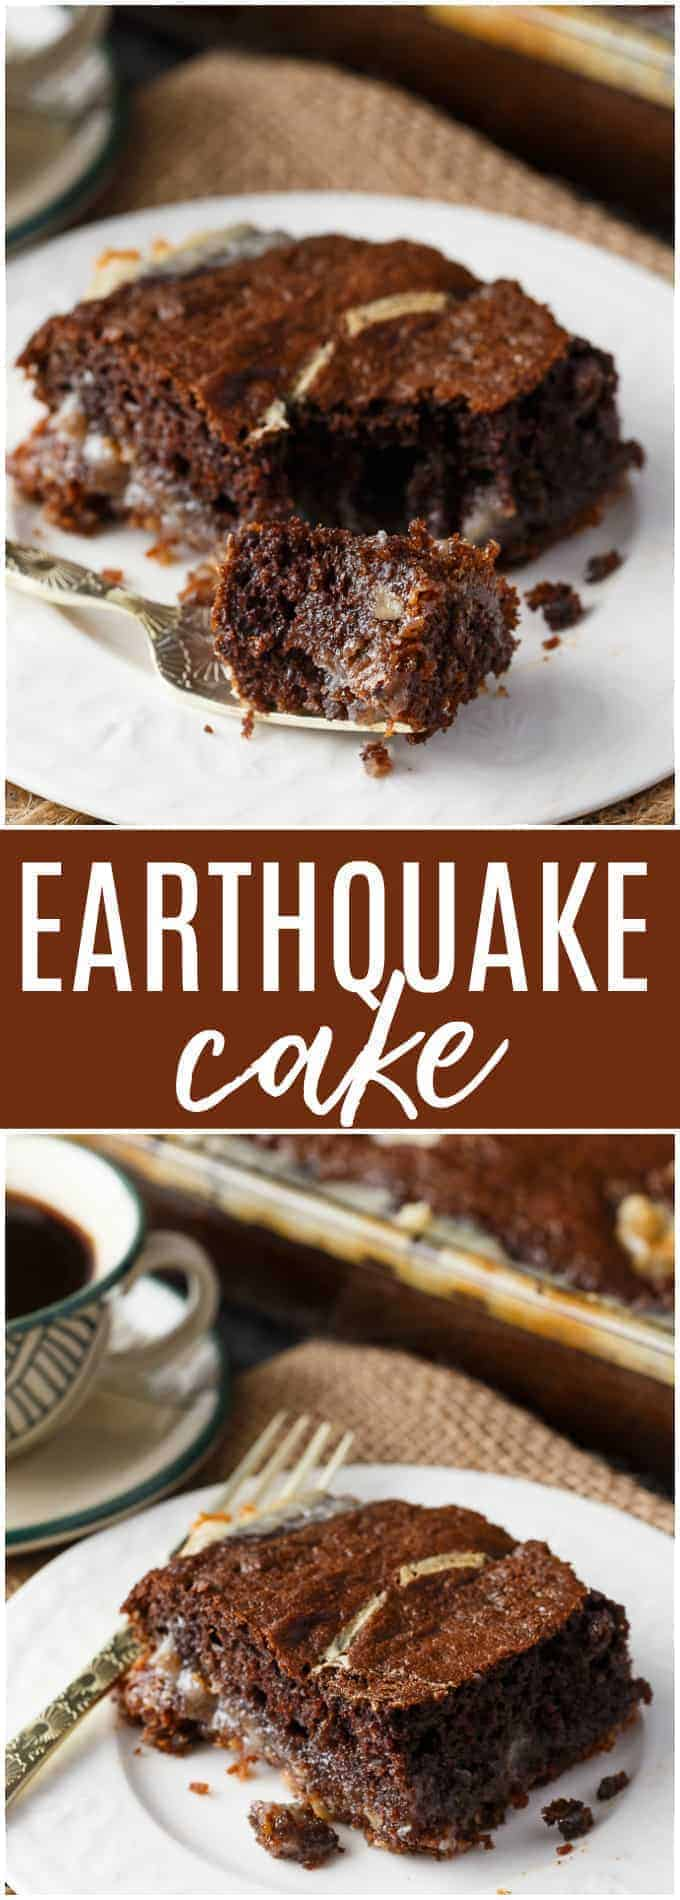 Earthquake Cake - A sweet chocolate cake mixed with condensed milk for an earth-moving dessert! Perfect for a family dinner or potluck.